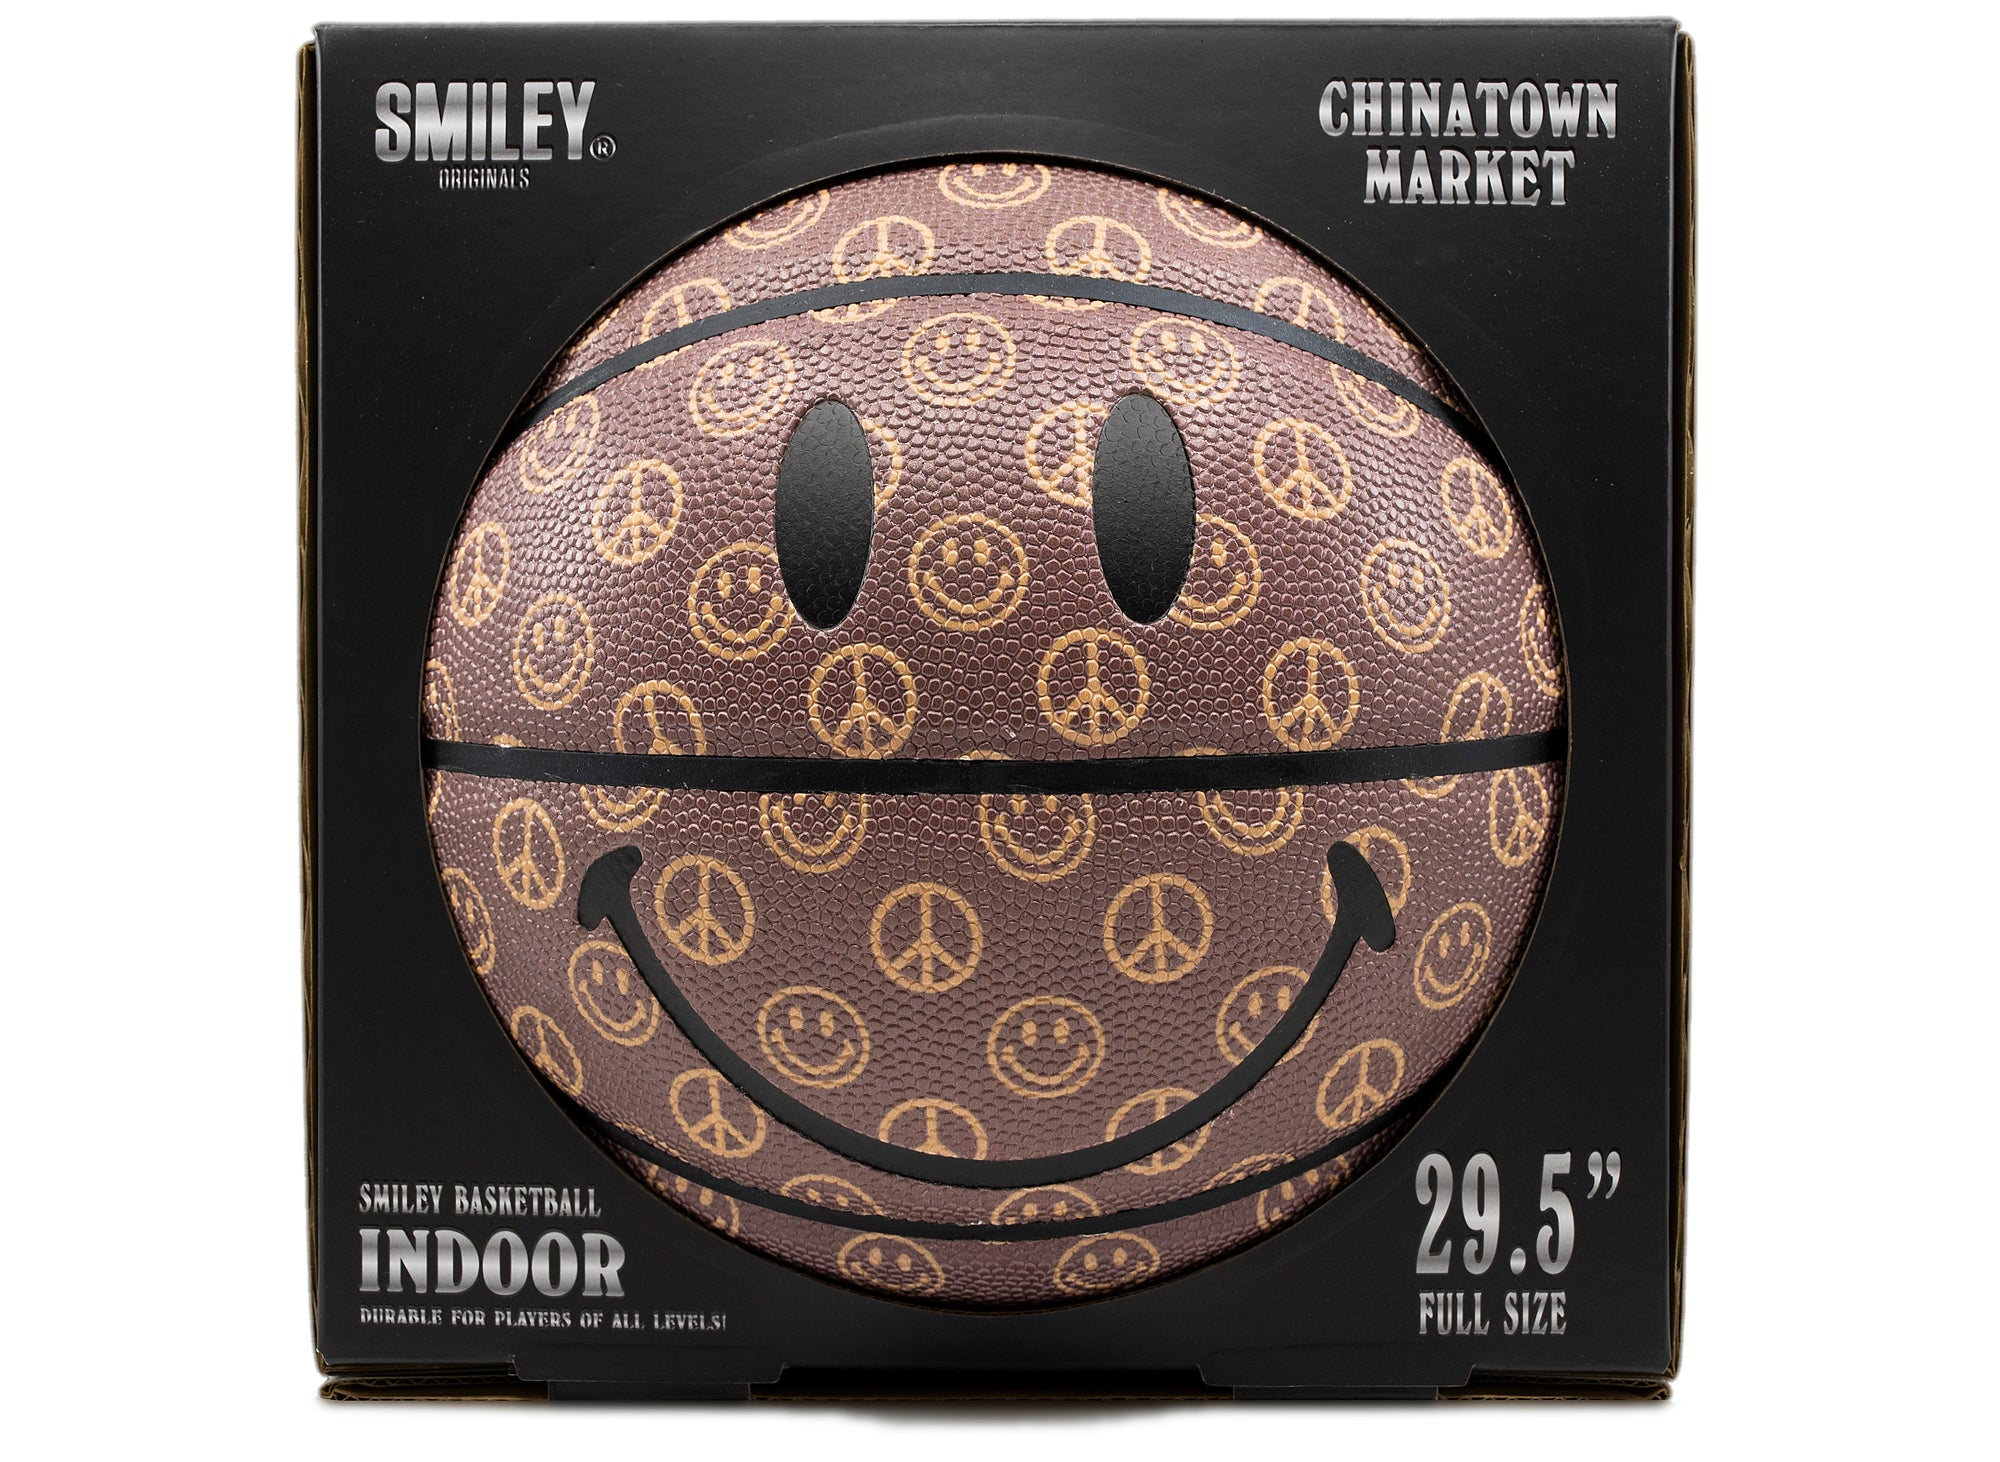 Chinatown Market Smiley Cabana Basketball xld